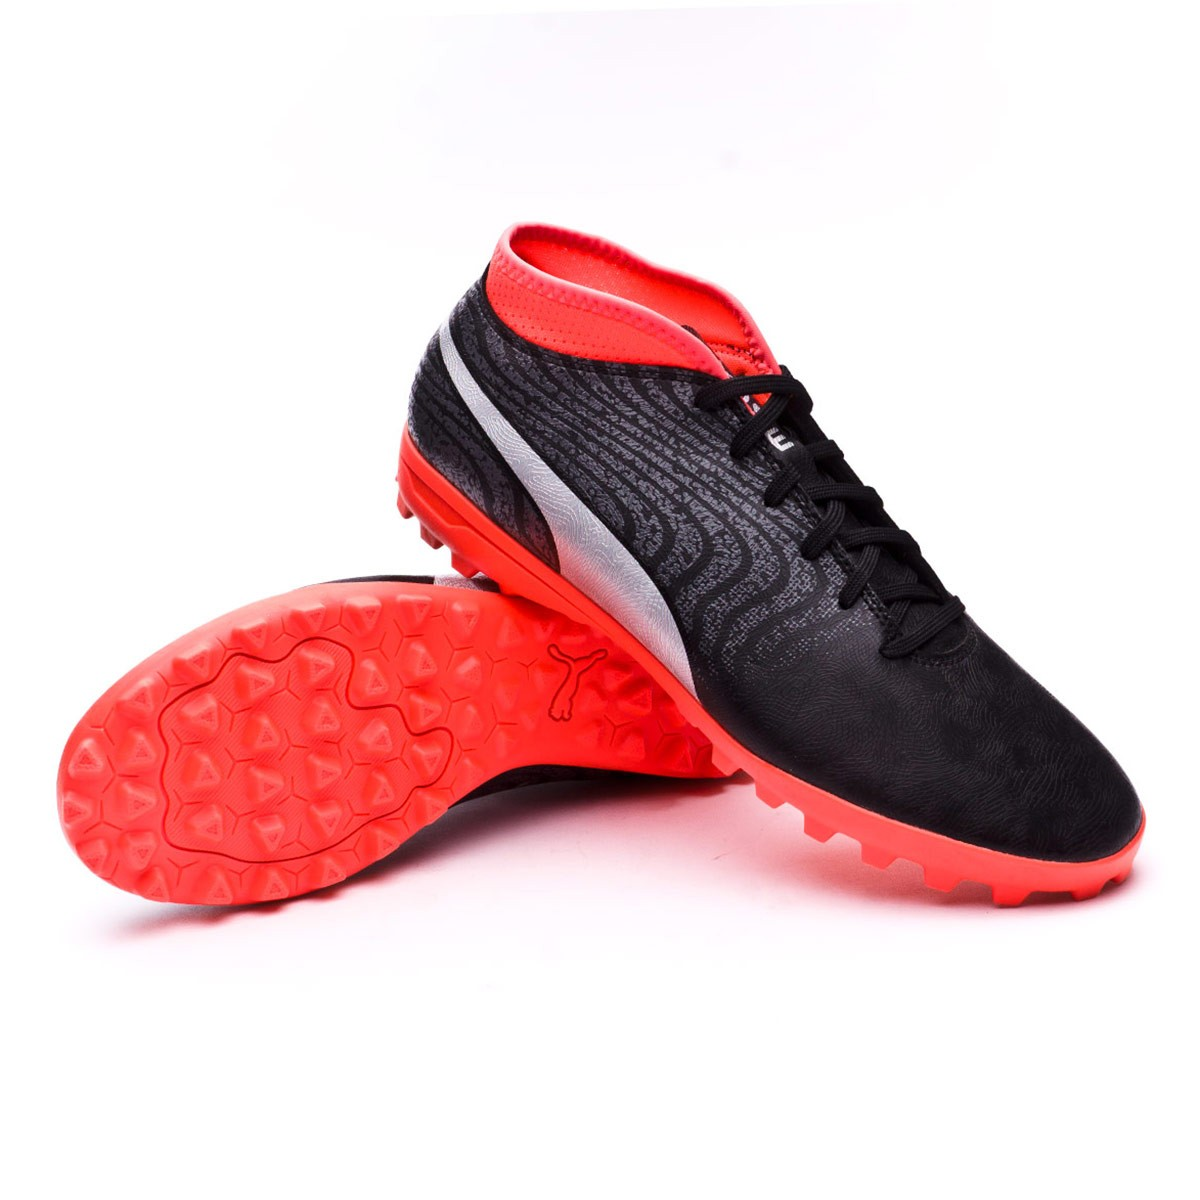 Scarpe Puma One 18.4 Turf Puma Black-Puma Silver-Red Blast - Negozio di  calcio Fútbol Emotion ab2d702671e